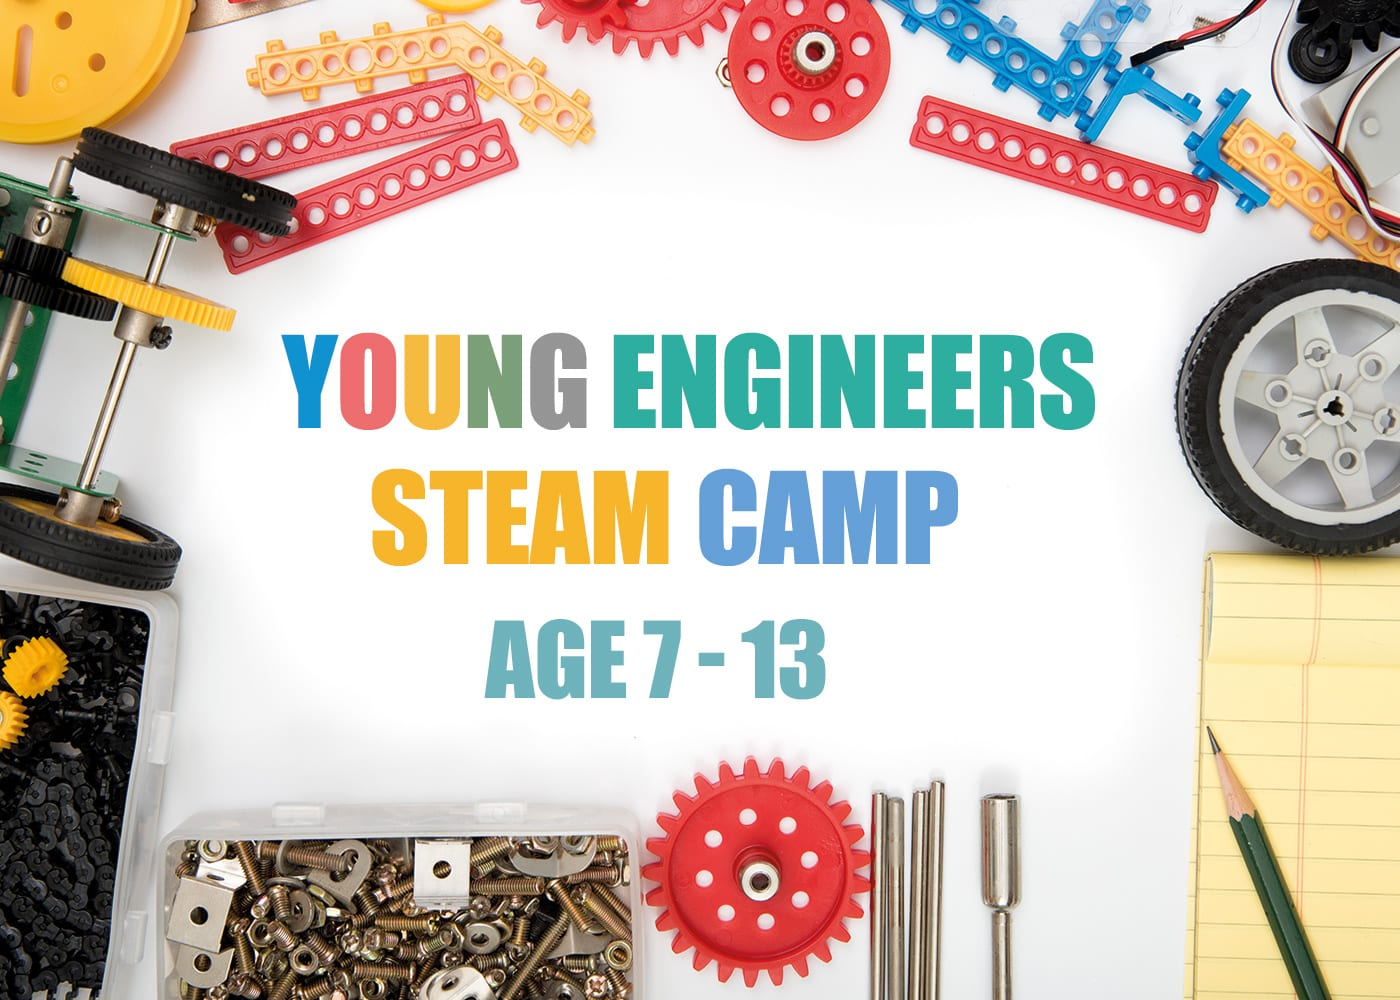 Here's a STEAM camp that the young'uns will enjoy!